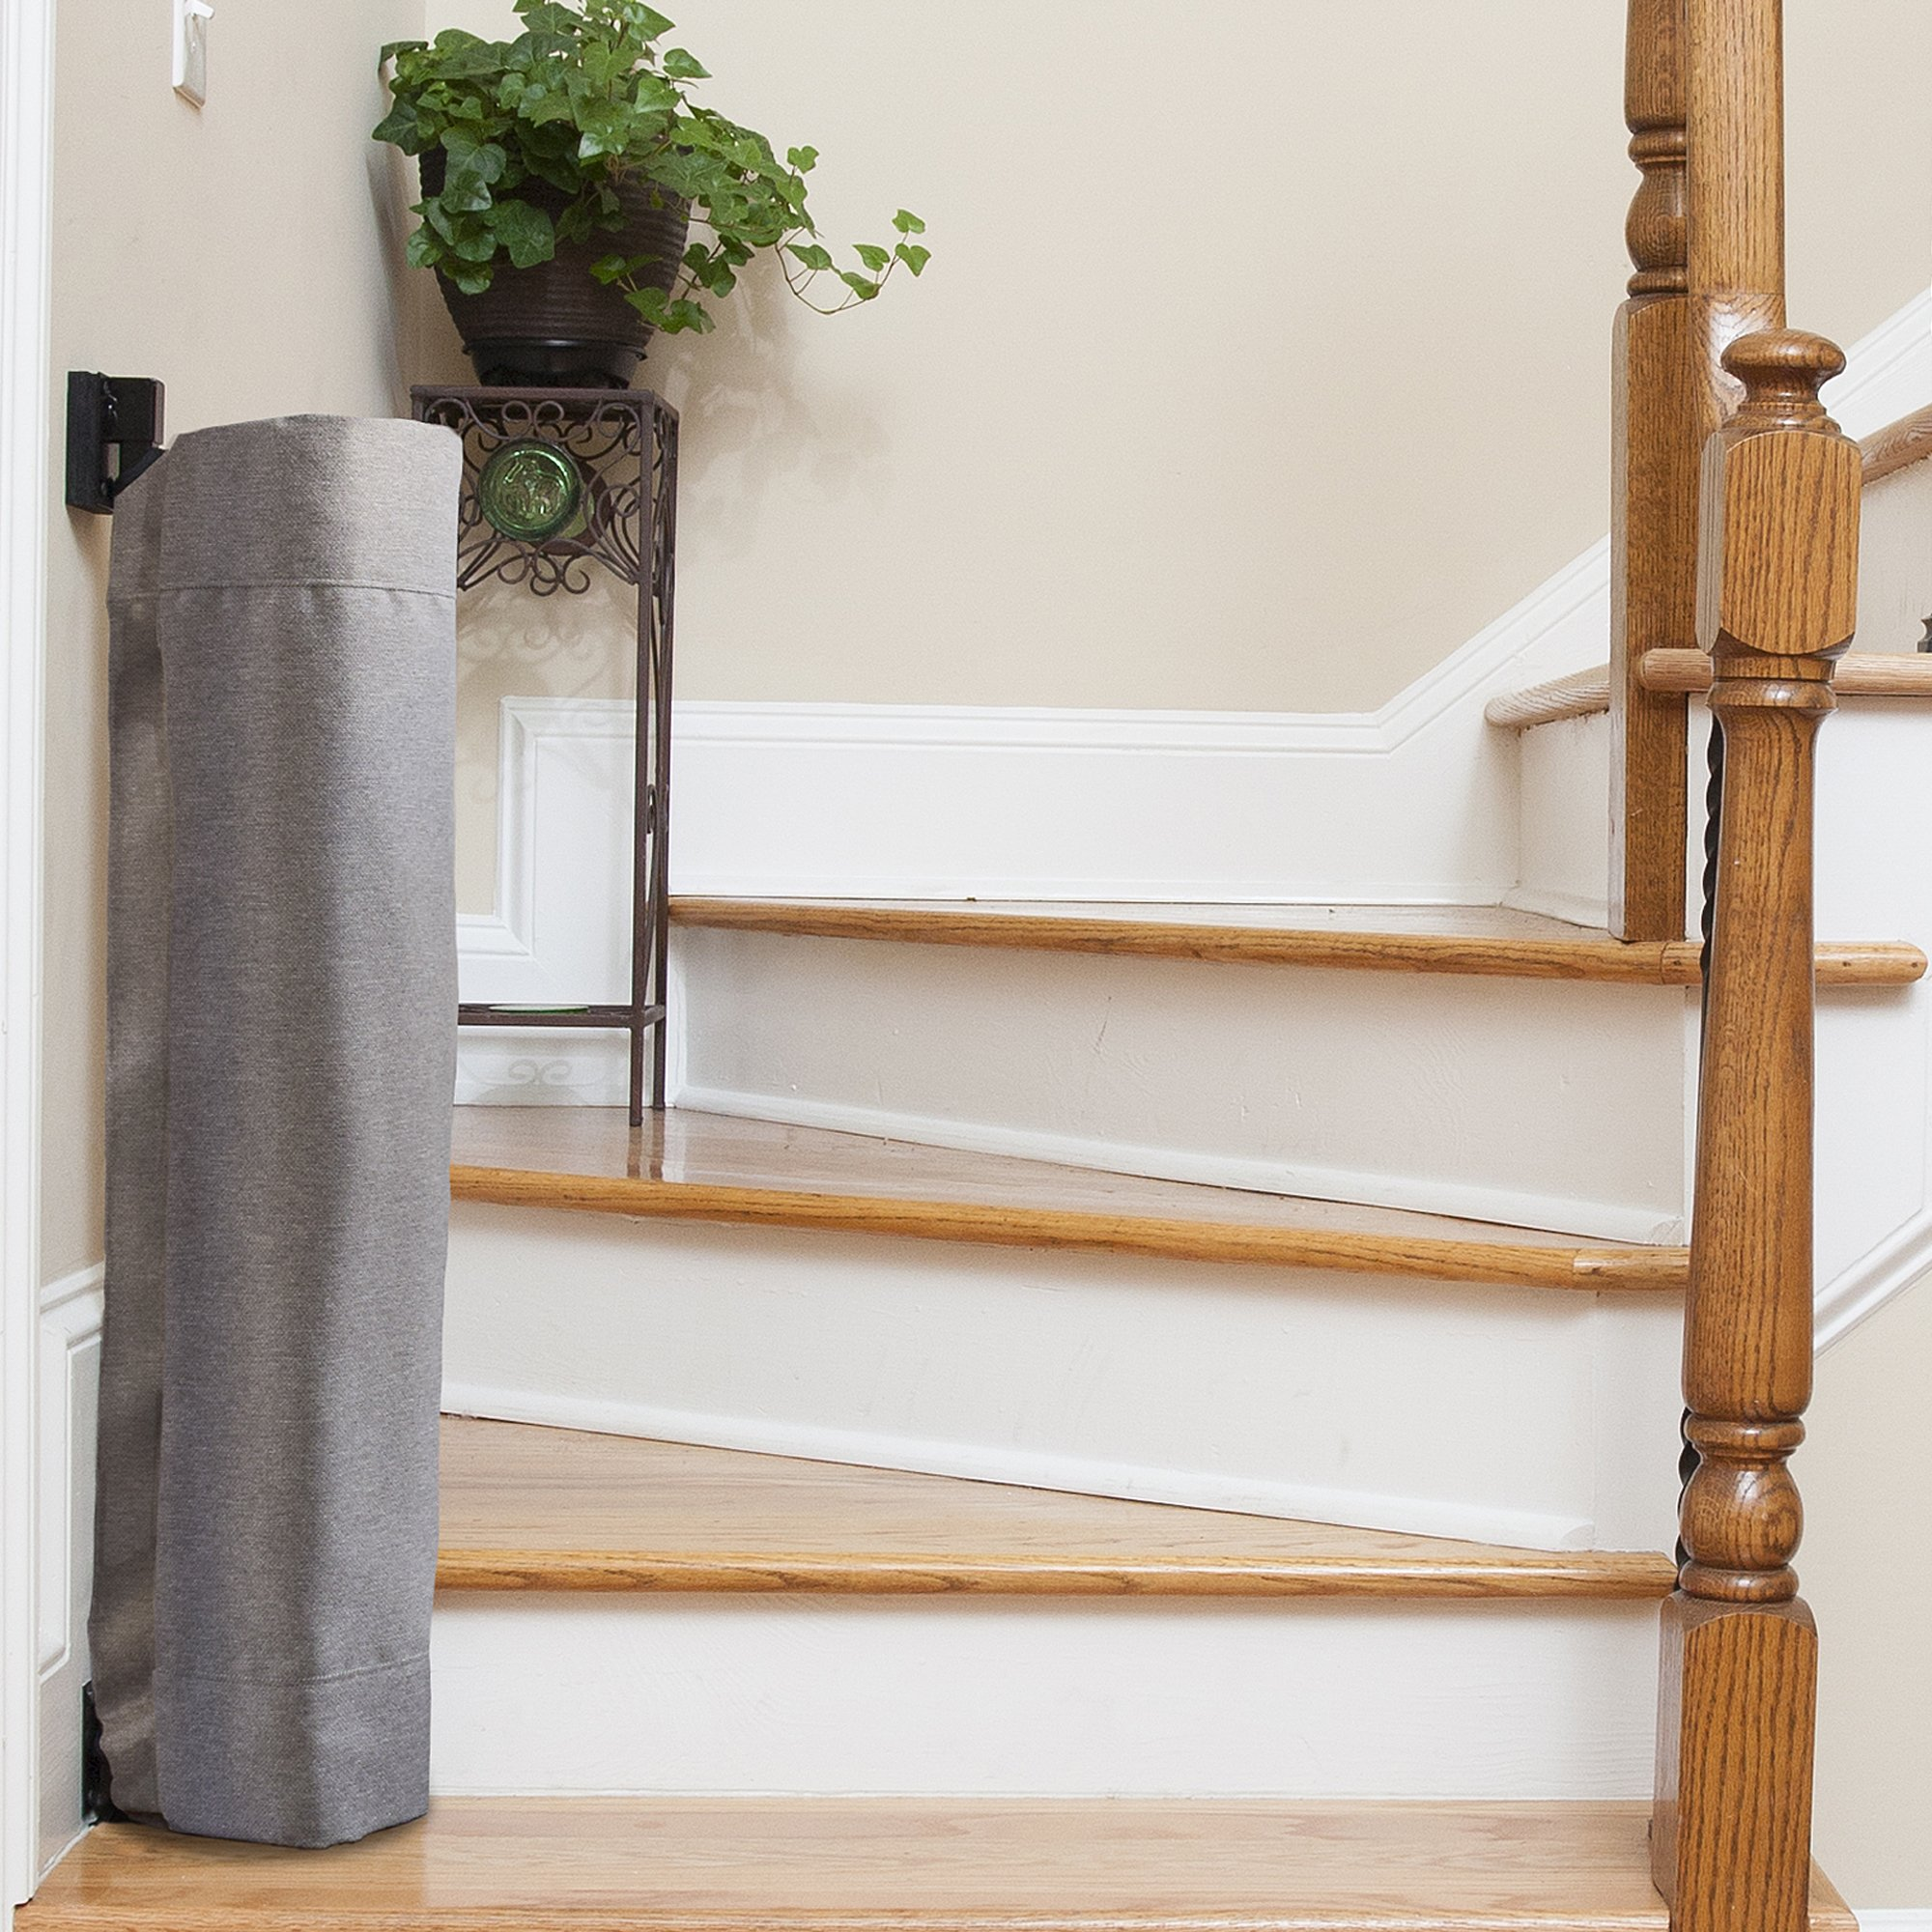 The Stair Barrier Baby and Pet Gate – Wall-to-Banister- Retractable Fabric Safety Gate Wide and Regular Sizes - Made in the USA – Grey by THE STAIR BARRIER KEEPING CHILDREN AND PETS OFF THE STAIRS (Image #3)